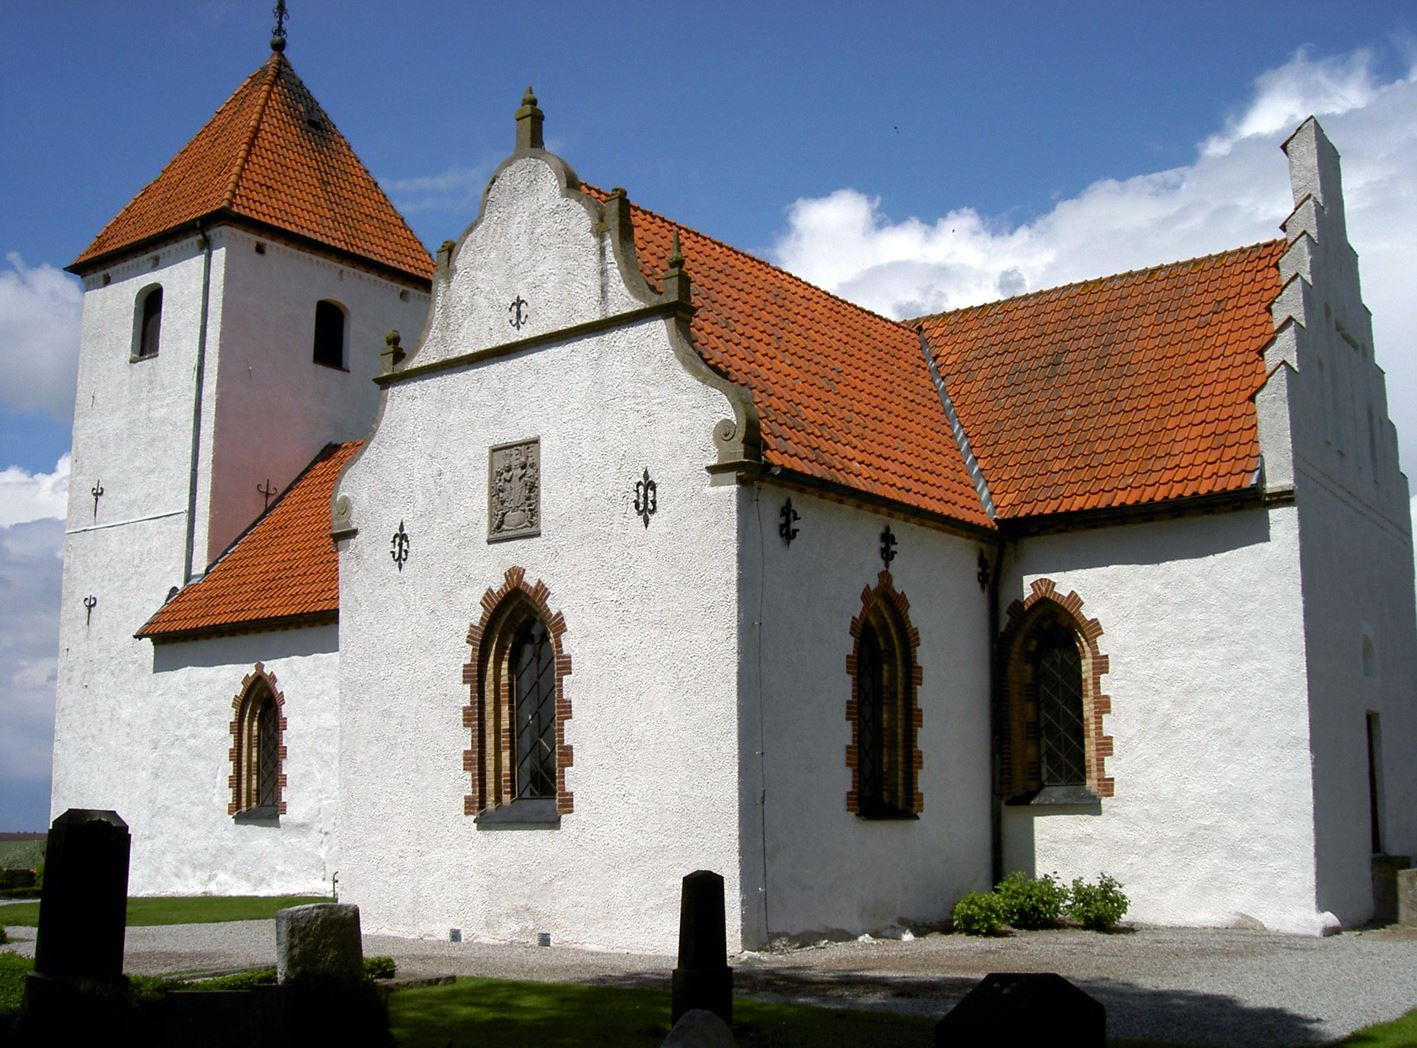 Bara church